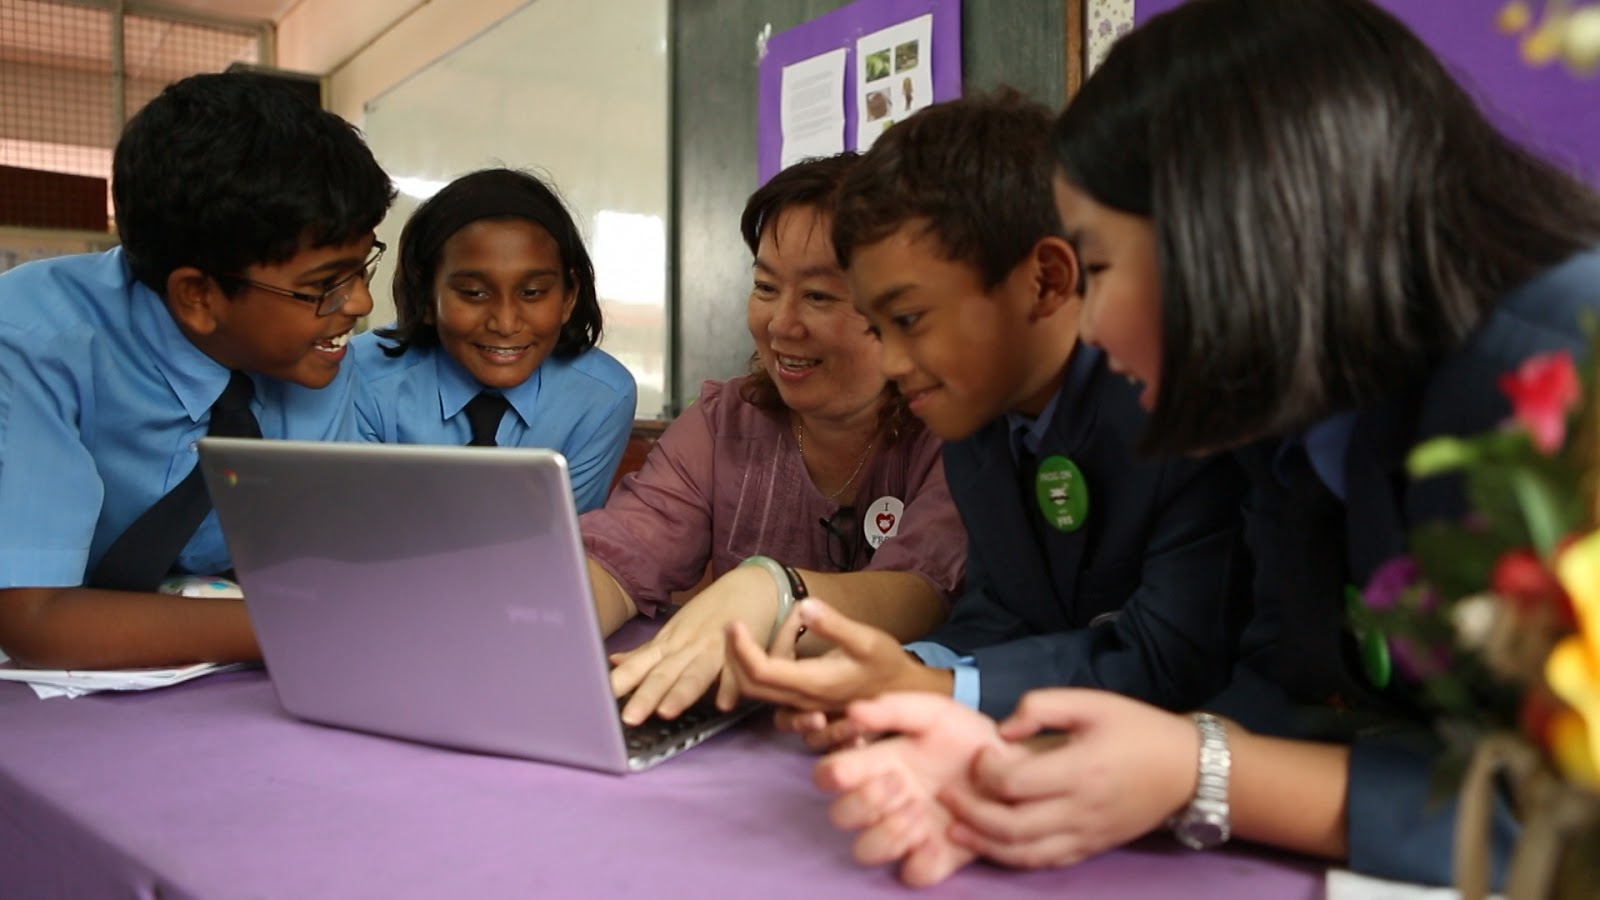 Malaysia to Reform Education System through Web Usage